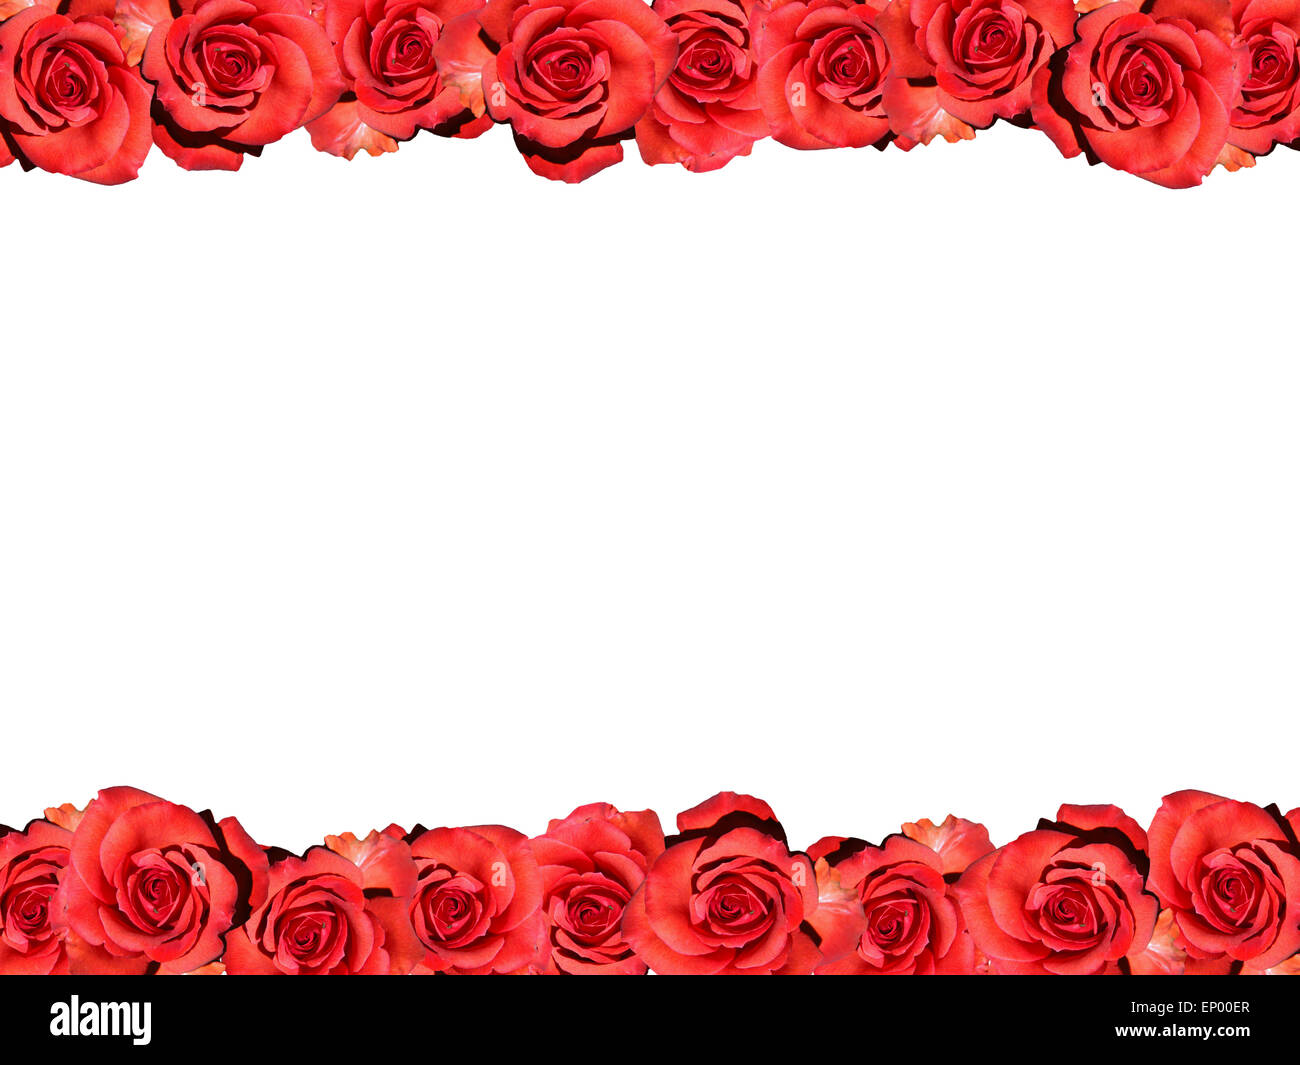 Rahmen: Rote Rosen   Symbolbild Liebe/ Valentinstag/ Frame: Red Rose    Symbolic Image For Love, Afection And Valentines Day.